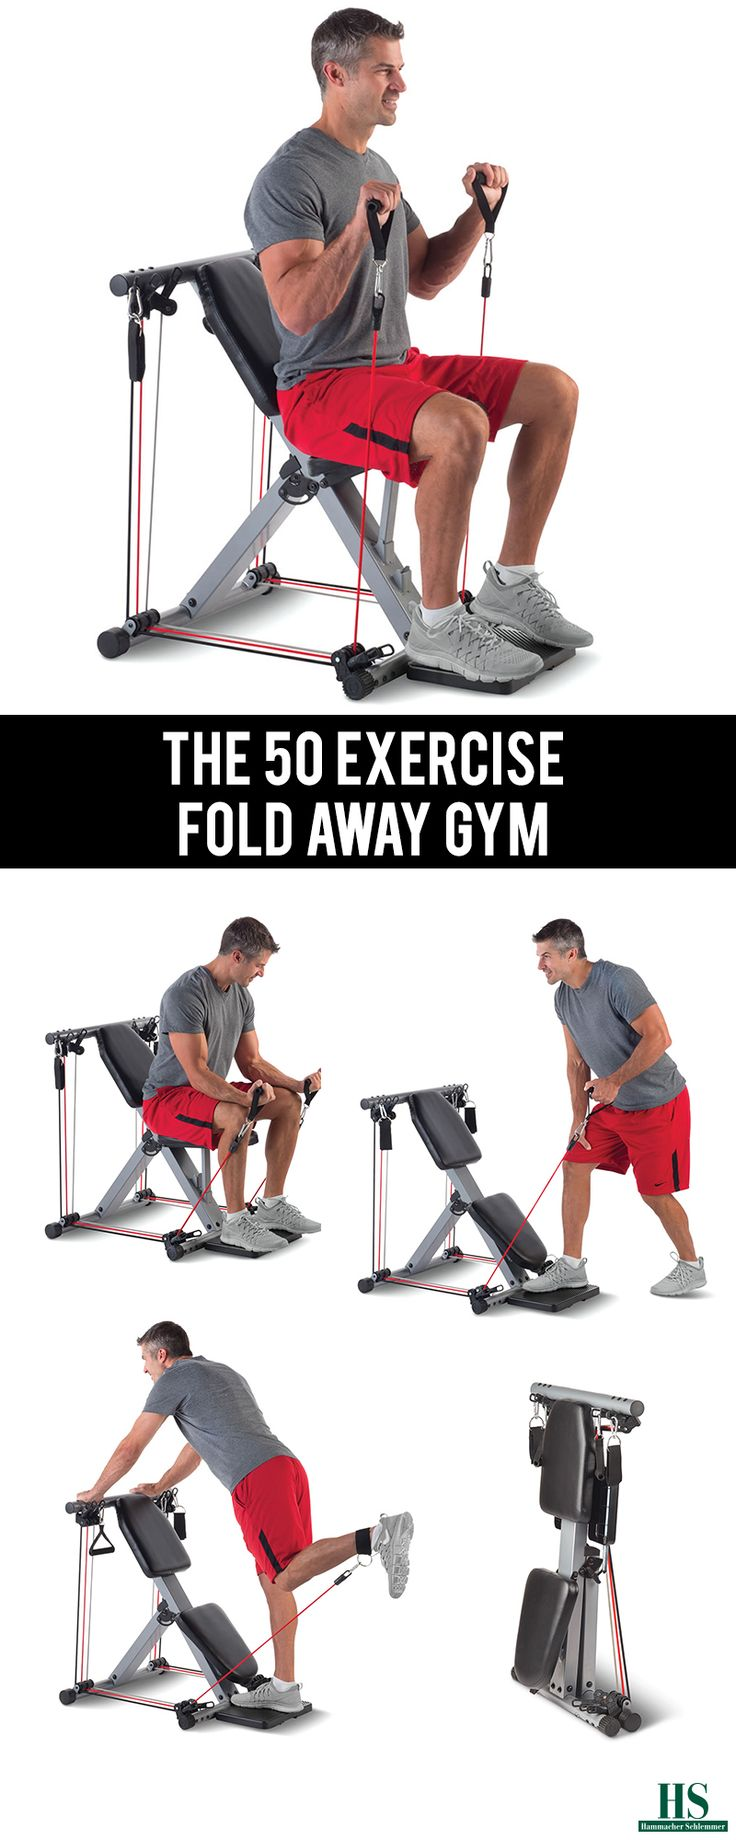 Commit to healthier habits and routines this year with The 50 Exercise Fold Away Gym from Hammacher Schlemmer.